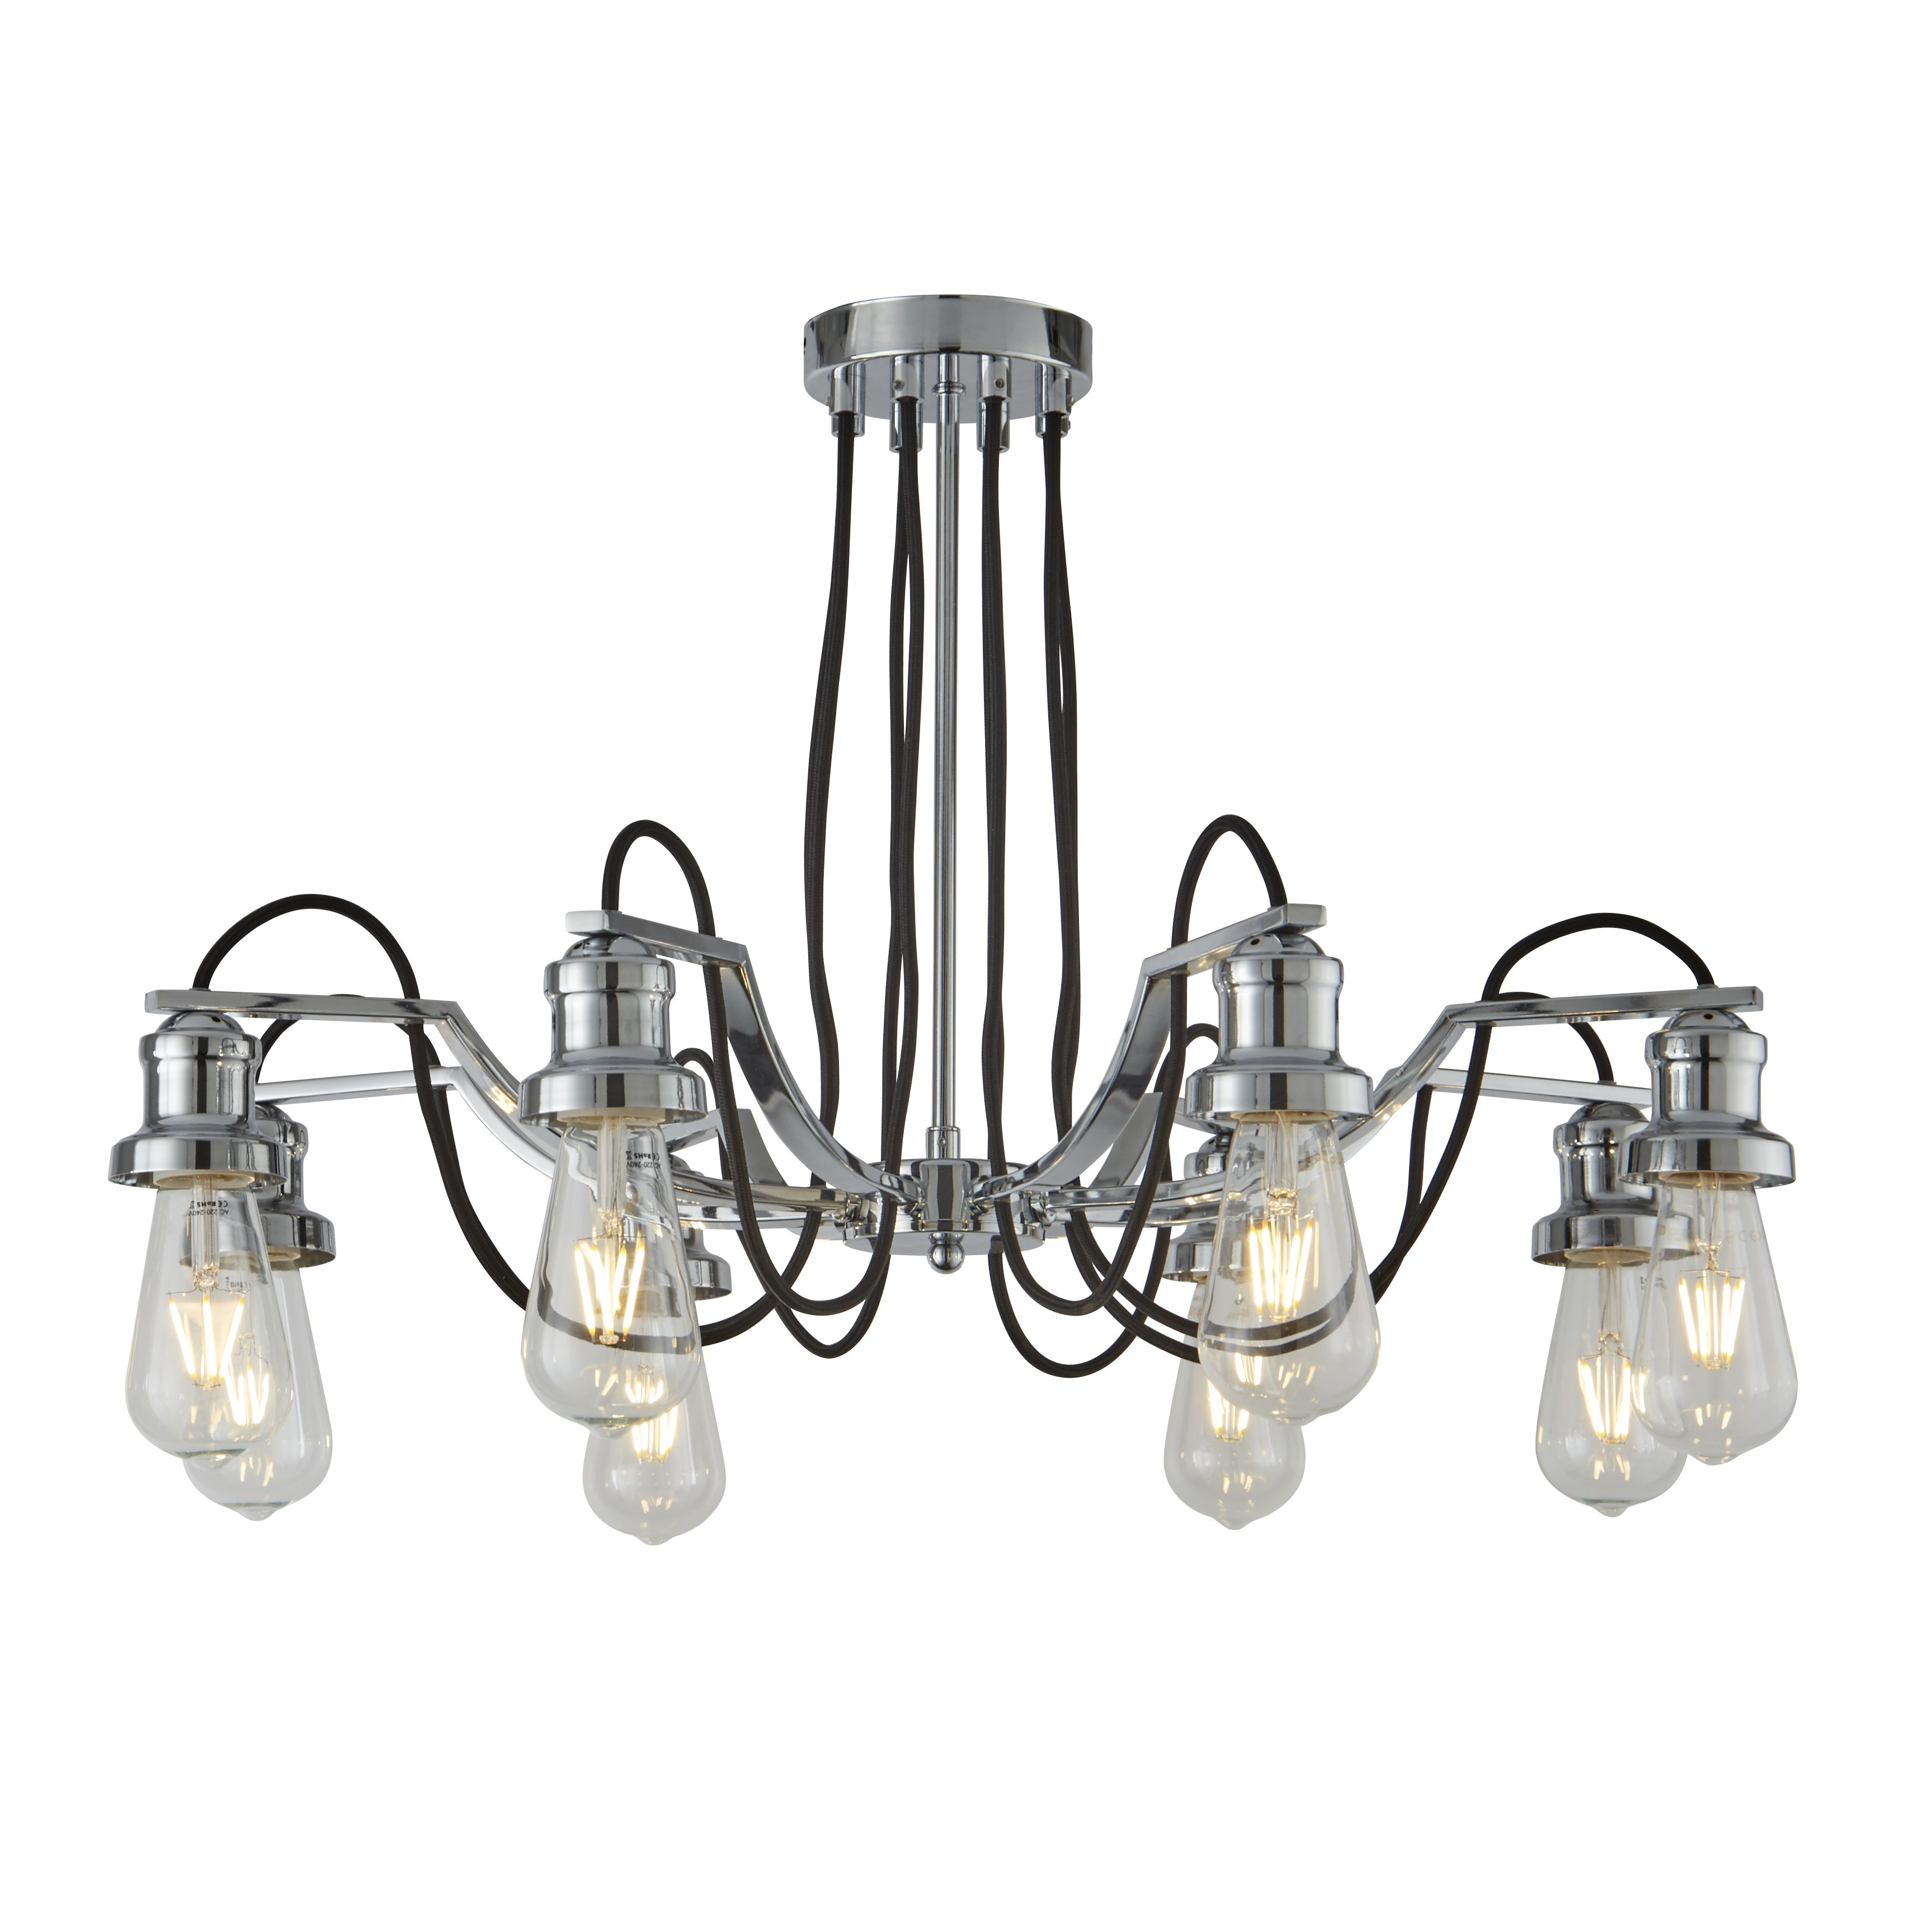 Olivia 8 Light Ceiling Fitting Black Braided Fabric Cable